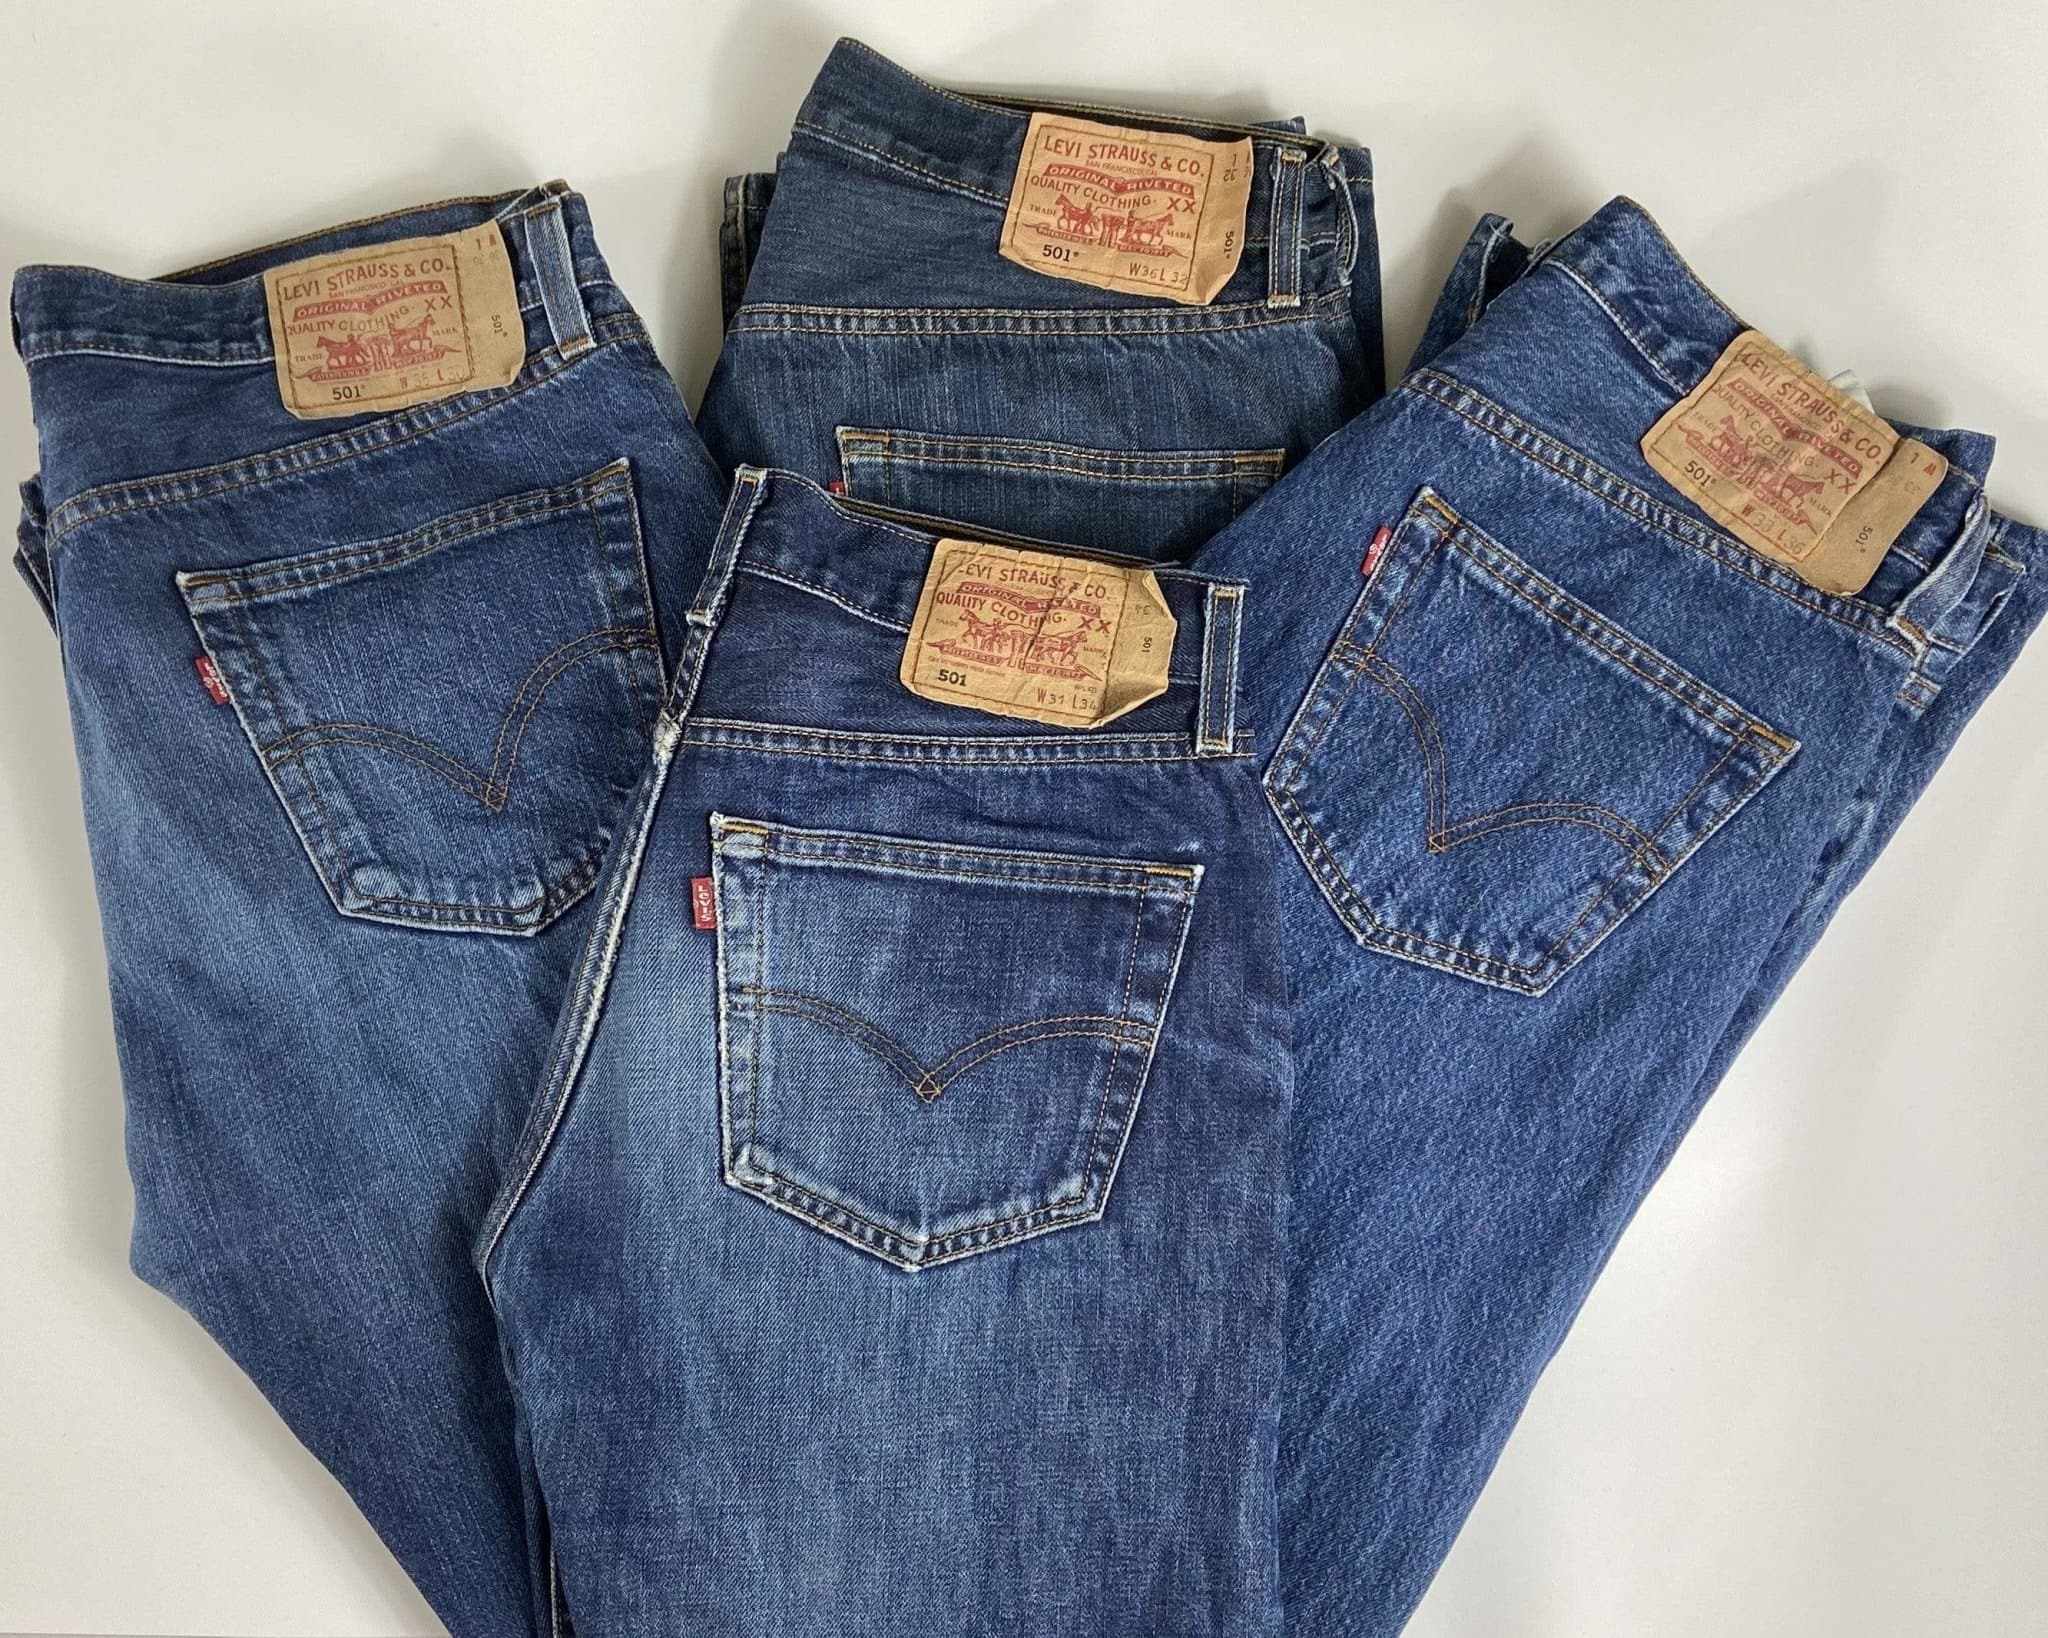 Vintage Levi's Classic 501 Jeans W32 L36 (M25) - Discounted Deals UK